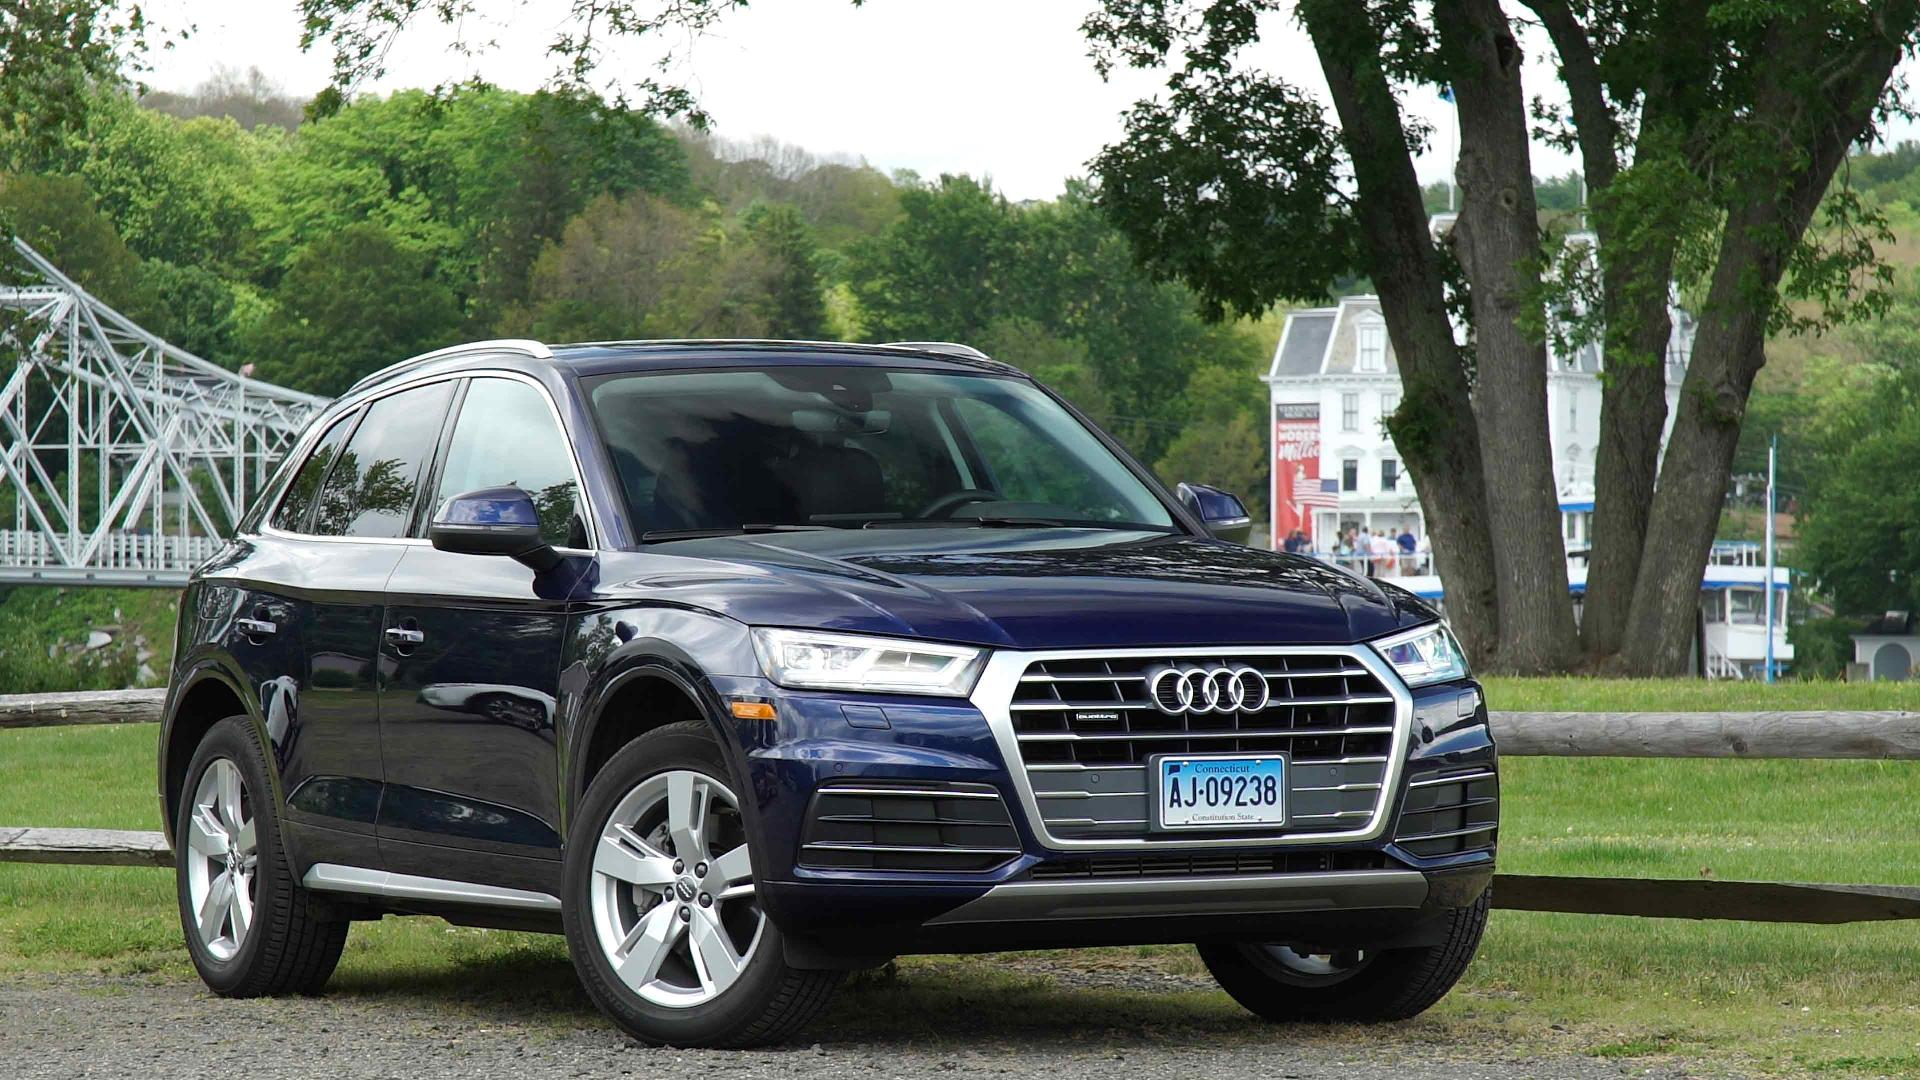 Audi Q Is More Distinctive Than It Looks Consumer Reports - Audi car q5